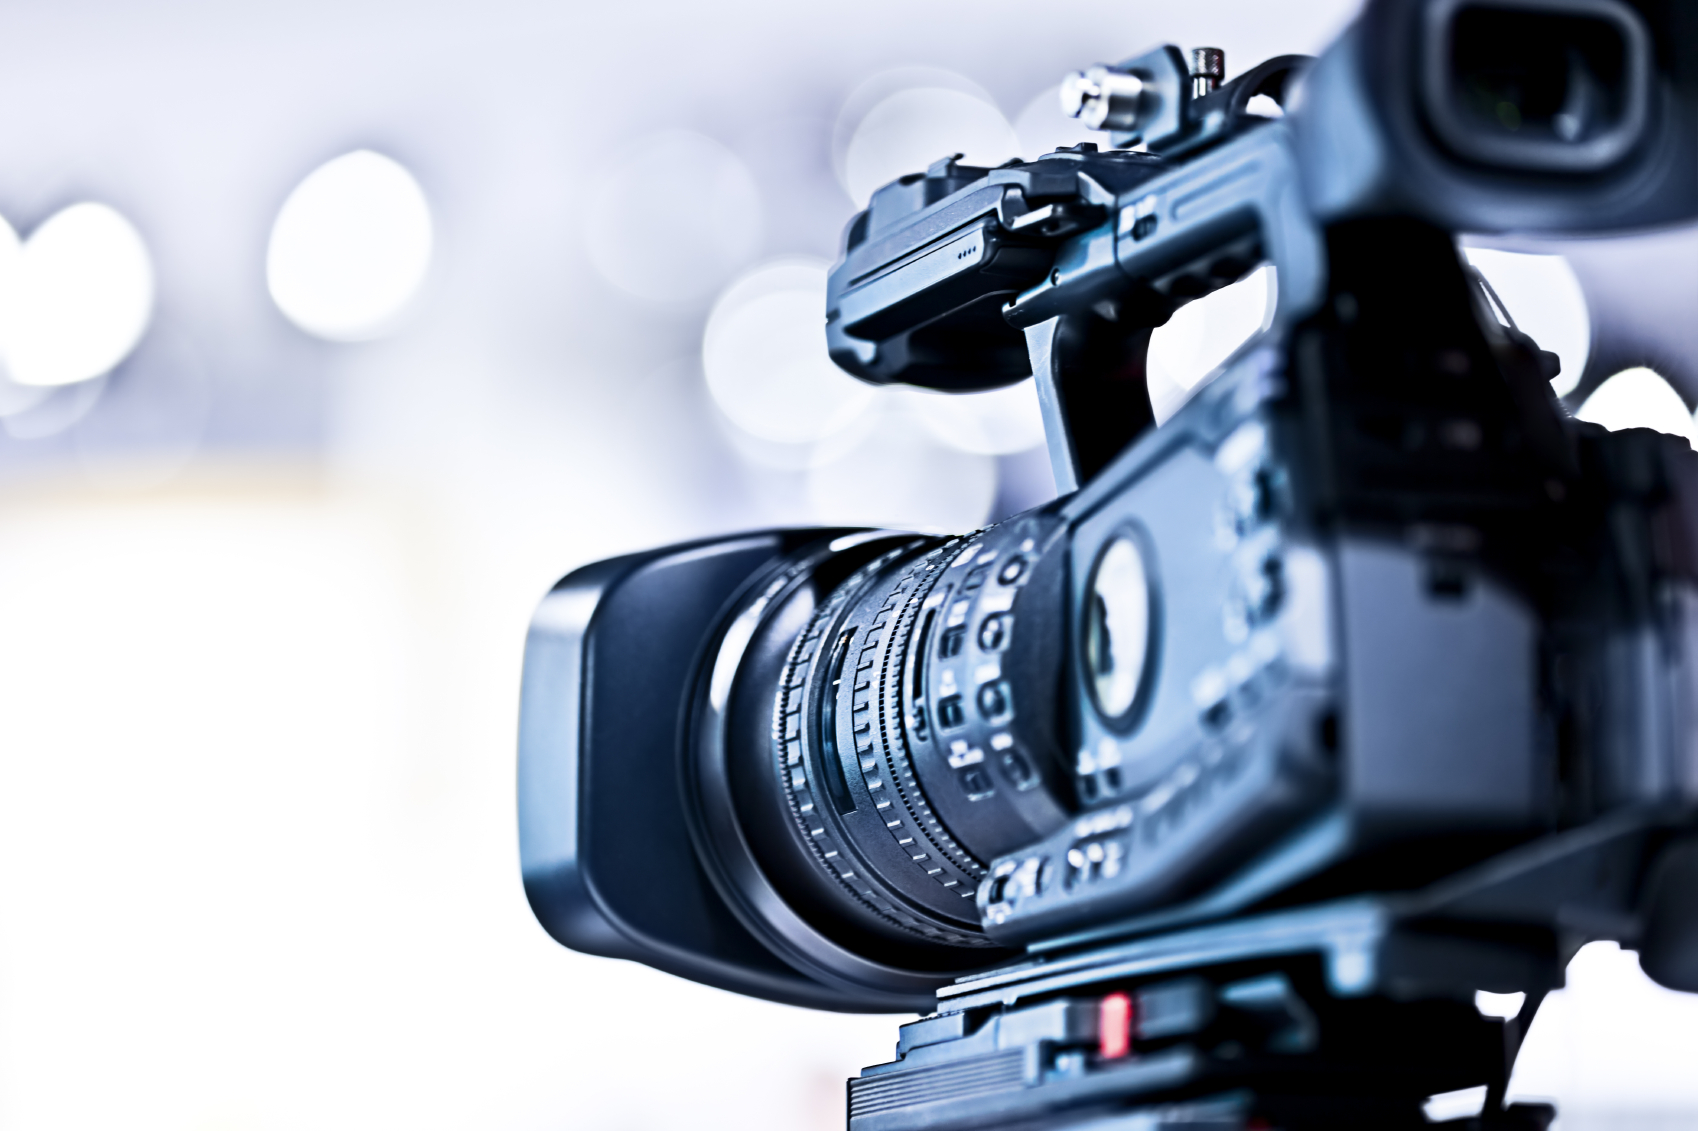 Professional HD video camera. Shallow DOF, selective focus.   [url=file_closeup.php?id=11425979][img]file_thumbview_approve.php?size=1&id=11425979[/img][/url] [url=file_closeup.php?id=11426632][img]file_thumbview_approve.php?size=1&id=11426632[/img][/url] [url=file_closeup.php?id=11426248][img]file_thumbview_approve.php?size=1&id=11426248[/img][/url] [url=file_closeup.php?id=11872101][img]file_thumbview_approve.php?size=1&id=11872101[/img][/url] [url=file_closeup.php?id=11872387][img]file_thumbview_approve.php?size=1&id=11872387[/img][/url] [url=file_closeup.php?id=10599371][img]file_thumbview_approve.php?size=1&id=10599371[/img][/url] [url=file_closeup.php?id=10547903][img]file_thumbview_approve.php?size=1&id=10547903[/img][/url] [url=file_closeup.php?id=11872180][img]file_thumbview_approve.php?size=1&id=11872180[/img][/url] [url=file_closeup.php?id=11872499][img]file_thumbview_approve.php?size=1&id=11872499[/img][/url] [url=file_closeup.php?id=10557032][img]file_thumbview_approve.php?size=1&id=10557032[/img][/url] [url=file_closeup.php?id=10552621][img]file_thumbview_approve.php?size=1&id=10552621[/img][/url] [url=file_closeup.php?id=10546832][img]file_thumbview_approve.php?size=1&id=10546832[/img][/url] [url=file_closeup.php?id=10552602][img]file_thumbview_approve.php?size=1&id=10552602[/img][/url] [url=file_closeup.php?id=10551857][img]file_thumbview_approve.php?size=1&id=10551857[/img][/url] [url=file_closeup.php?id=10555552][img]file_thumbview_approve.php?size=1&id=10555552[/img][/url]  [url=http://www.istockphoto.com/file_search.php?action=file&lightboxID=1049019][img]http://santoriniphoto.com/Template-Modern-technology.jpg[/img][/url] [url=file_closeup.php?id=14440031][img]file_thumbview_approve.php?size=1&id=14440031[/img][/url] [url=file_closeup.php?id=14353591][img]file_thumbview_approve.php?size=1&id=14353591[/img][/url] [url=file_closeup.php?id=11872290][img]file_thumbview_approve.php?size=1&id=11872290[/img][/url]